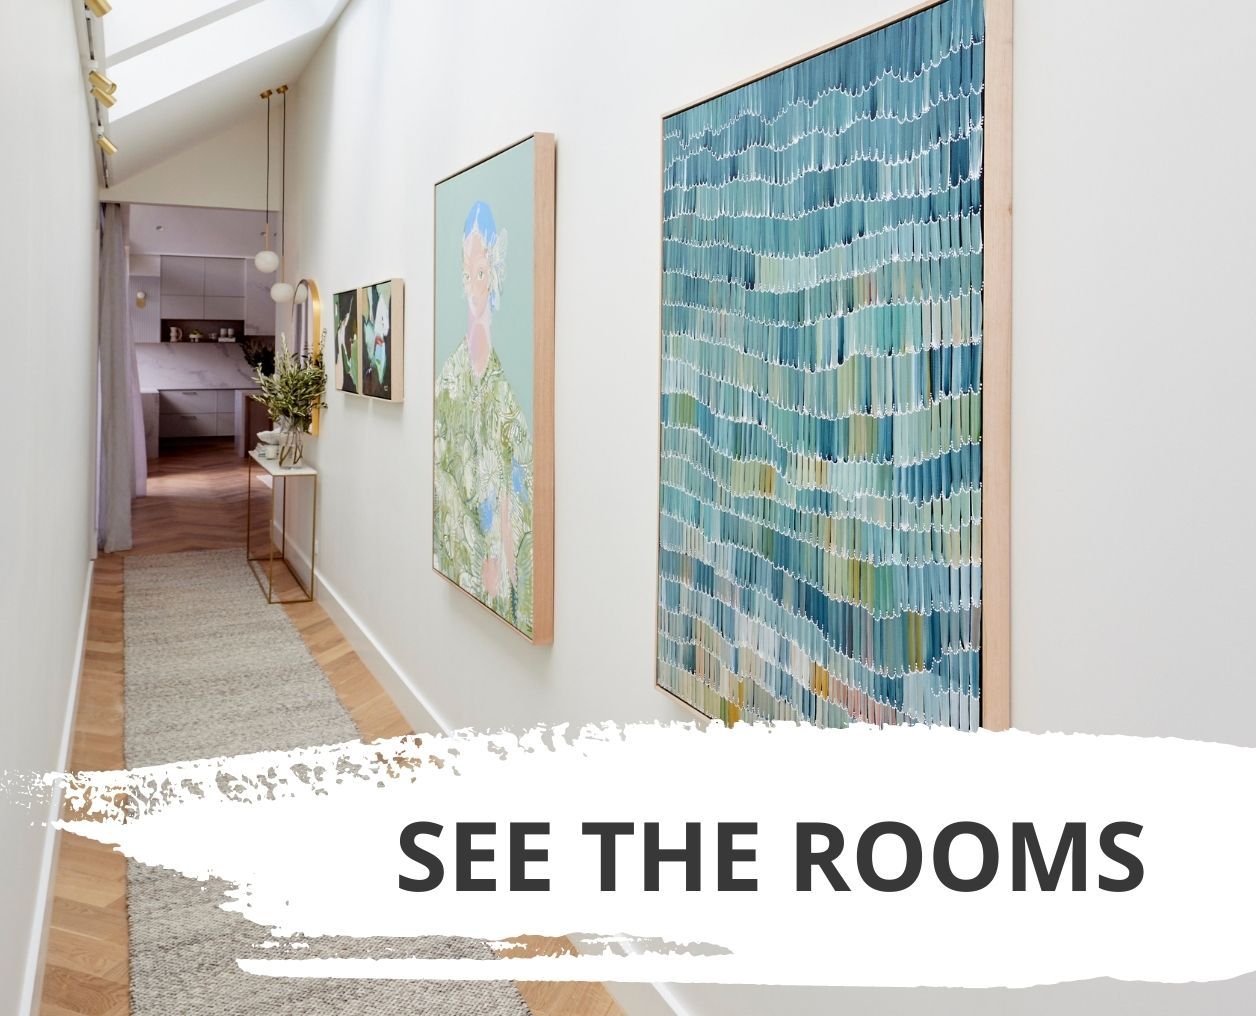 See the Rooms